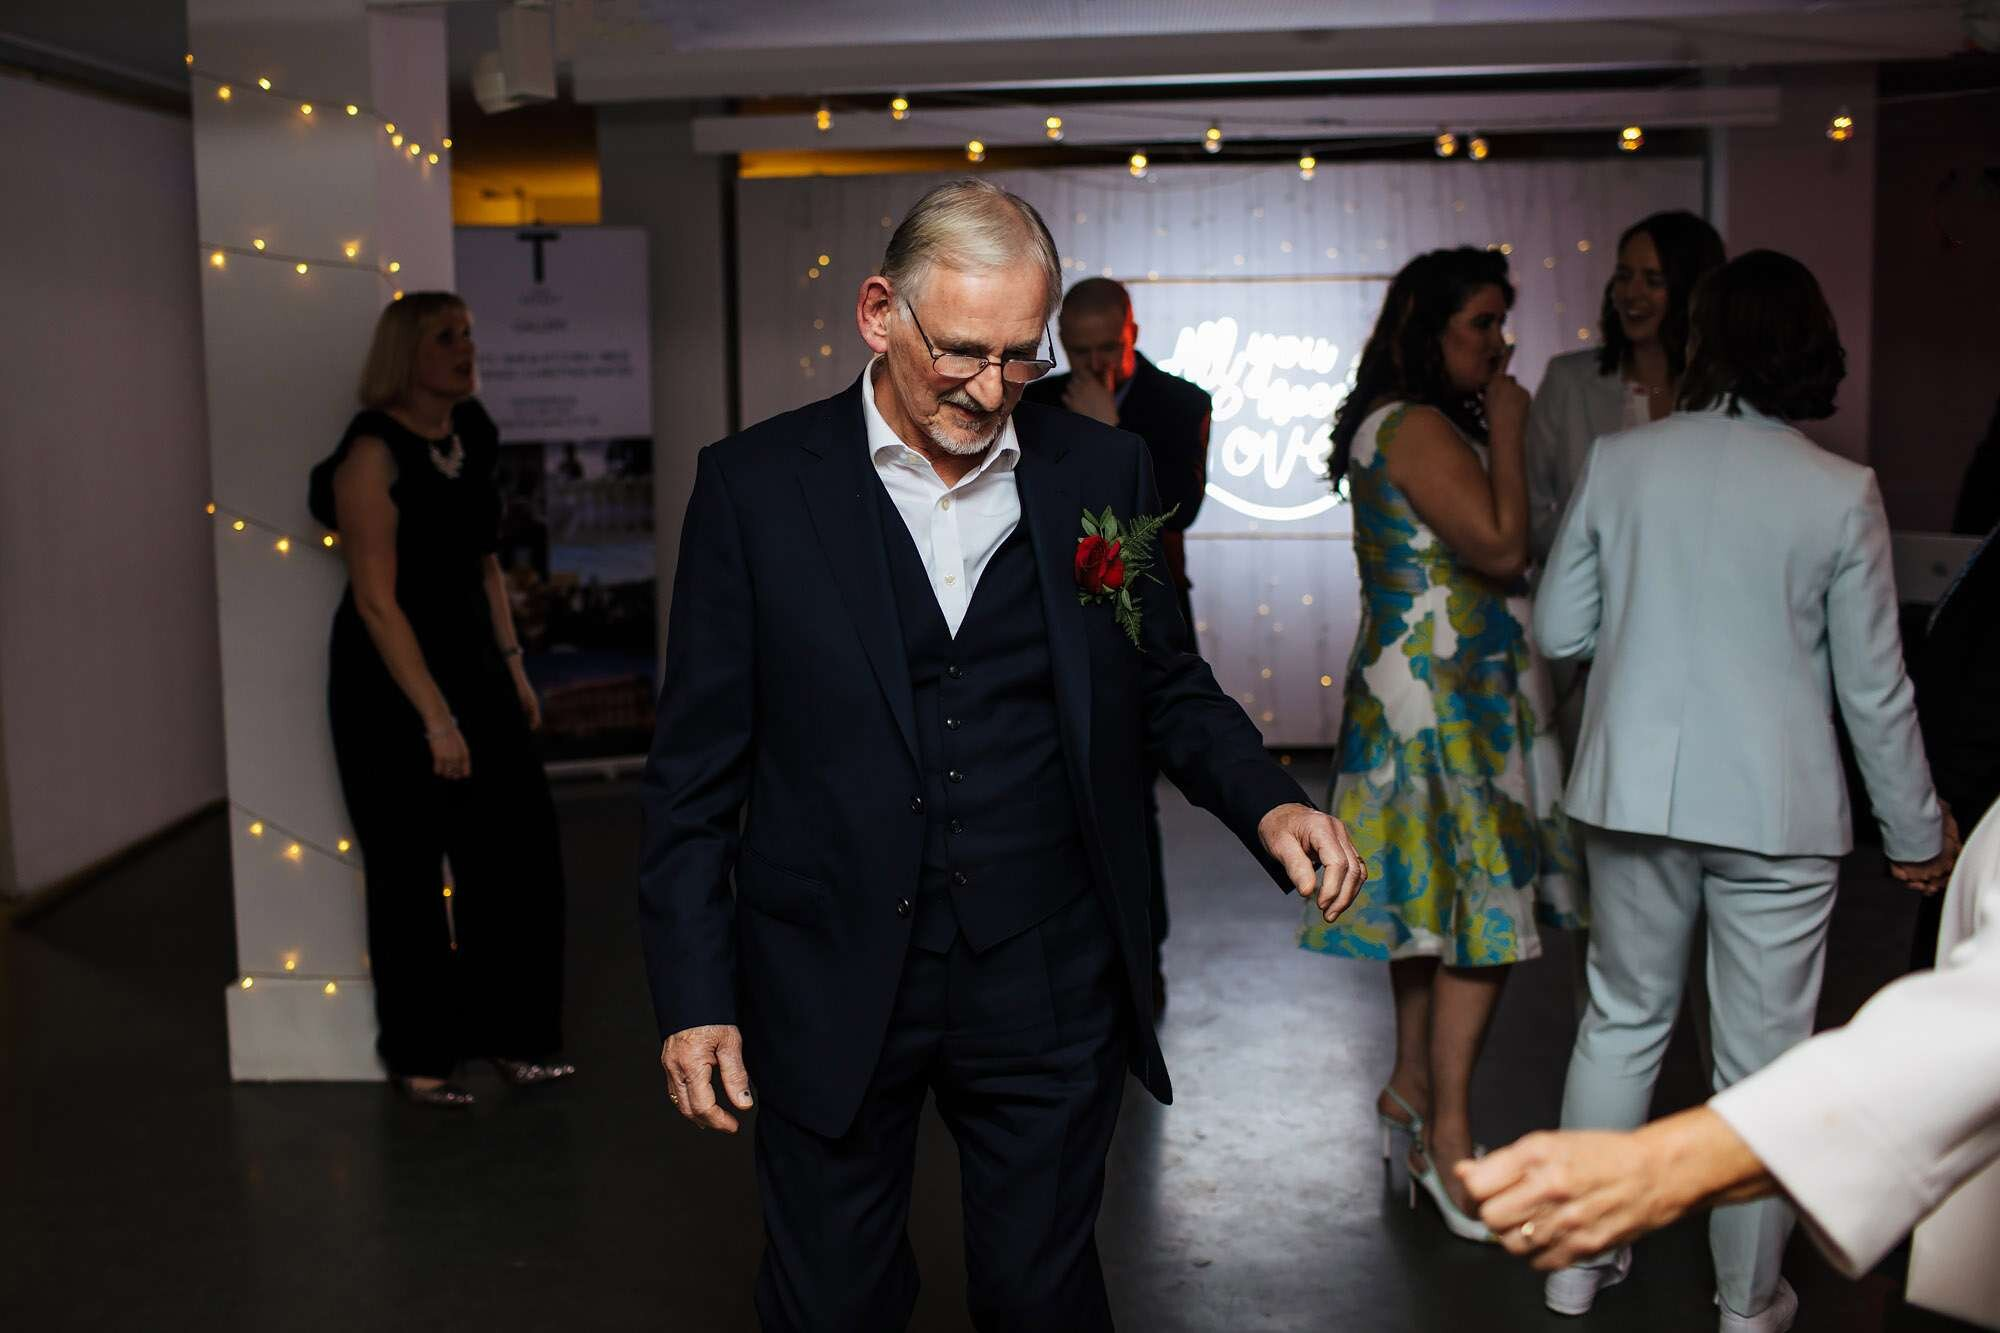 Bride's dad having a dance at her wedding